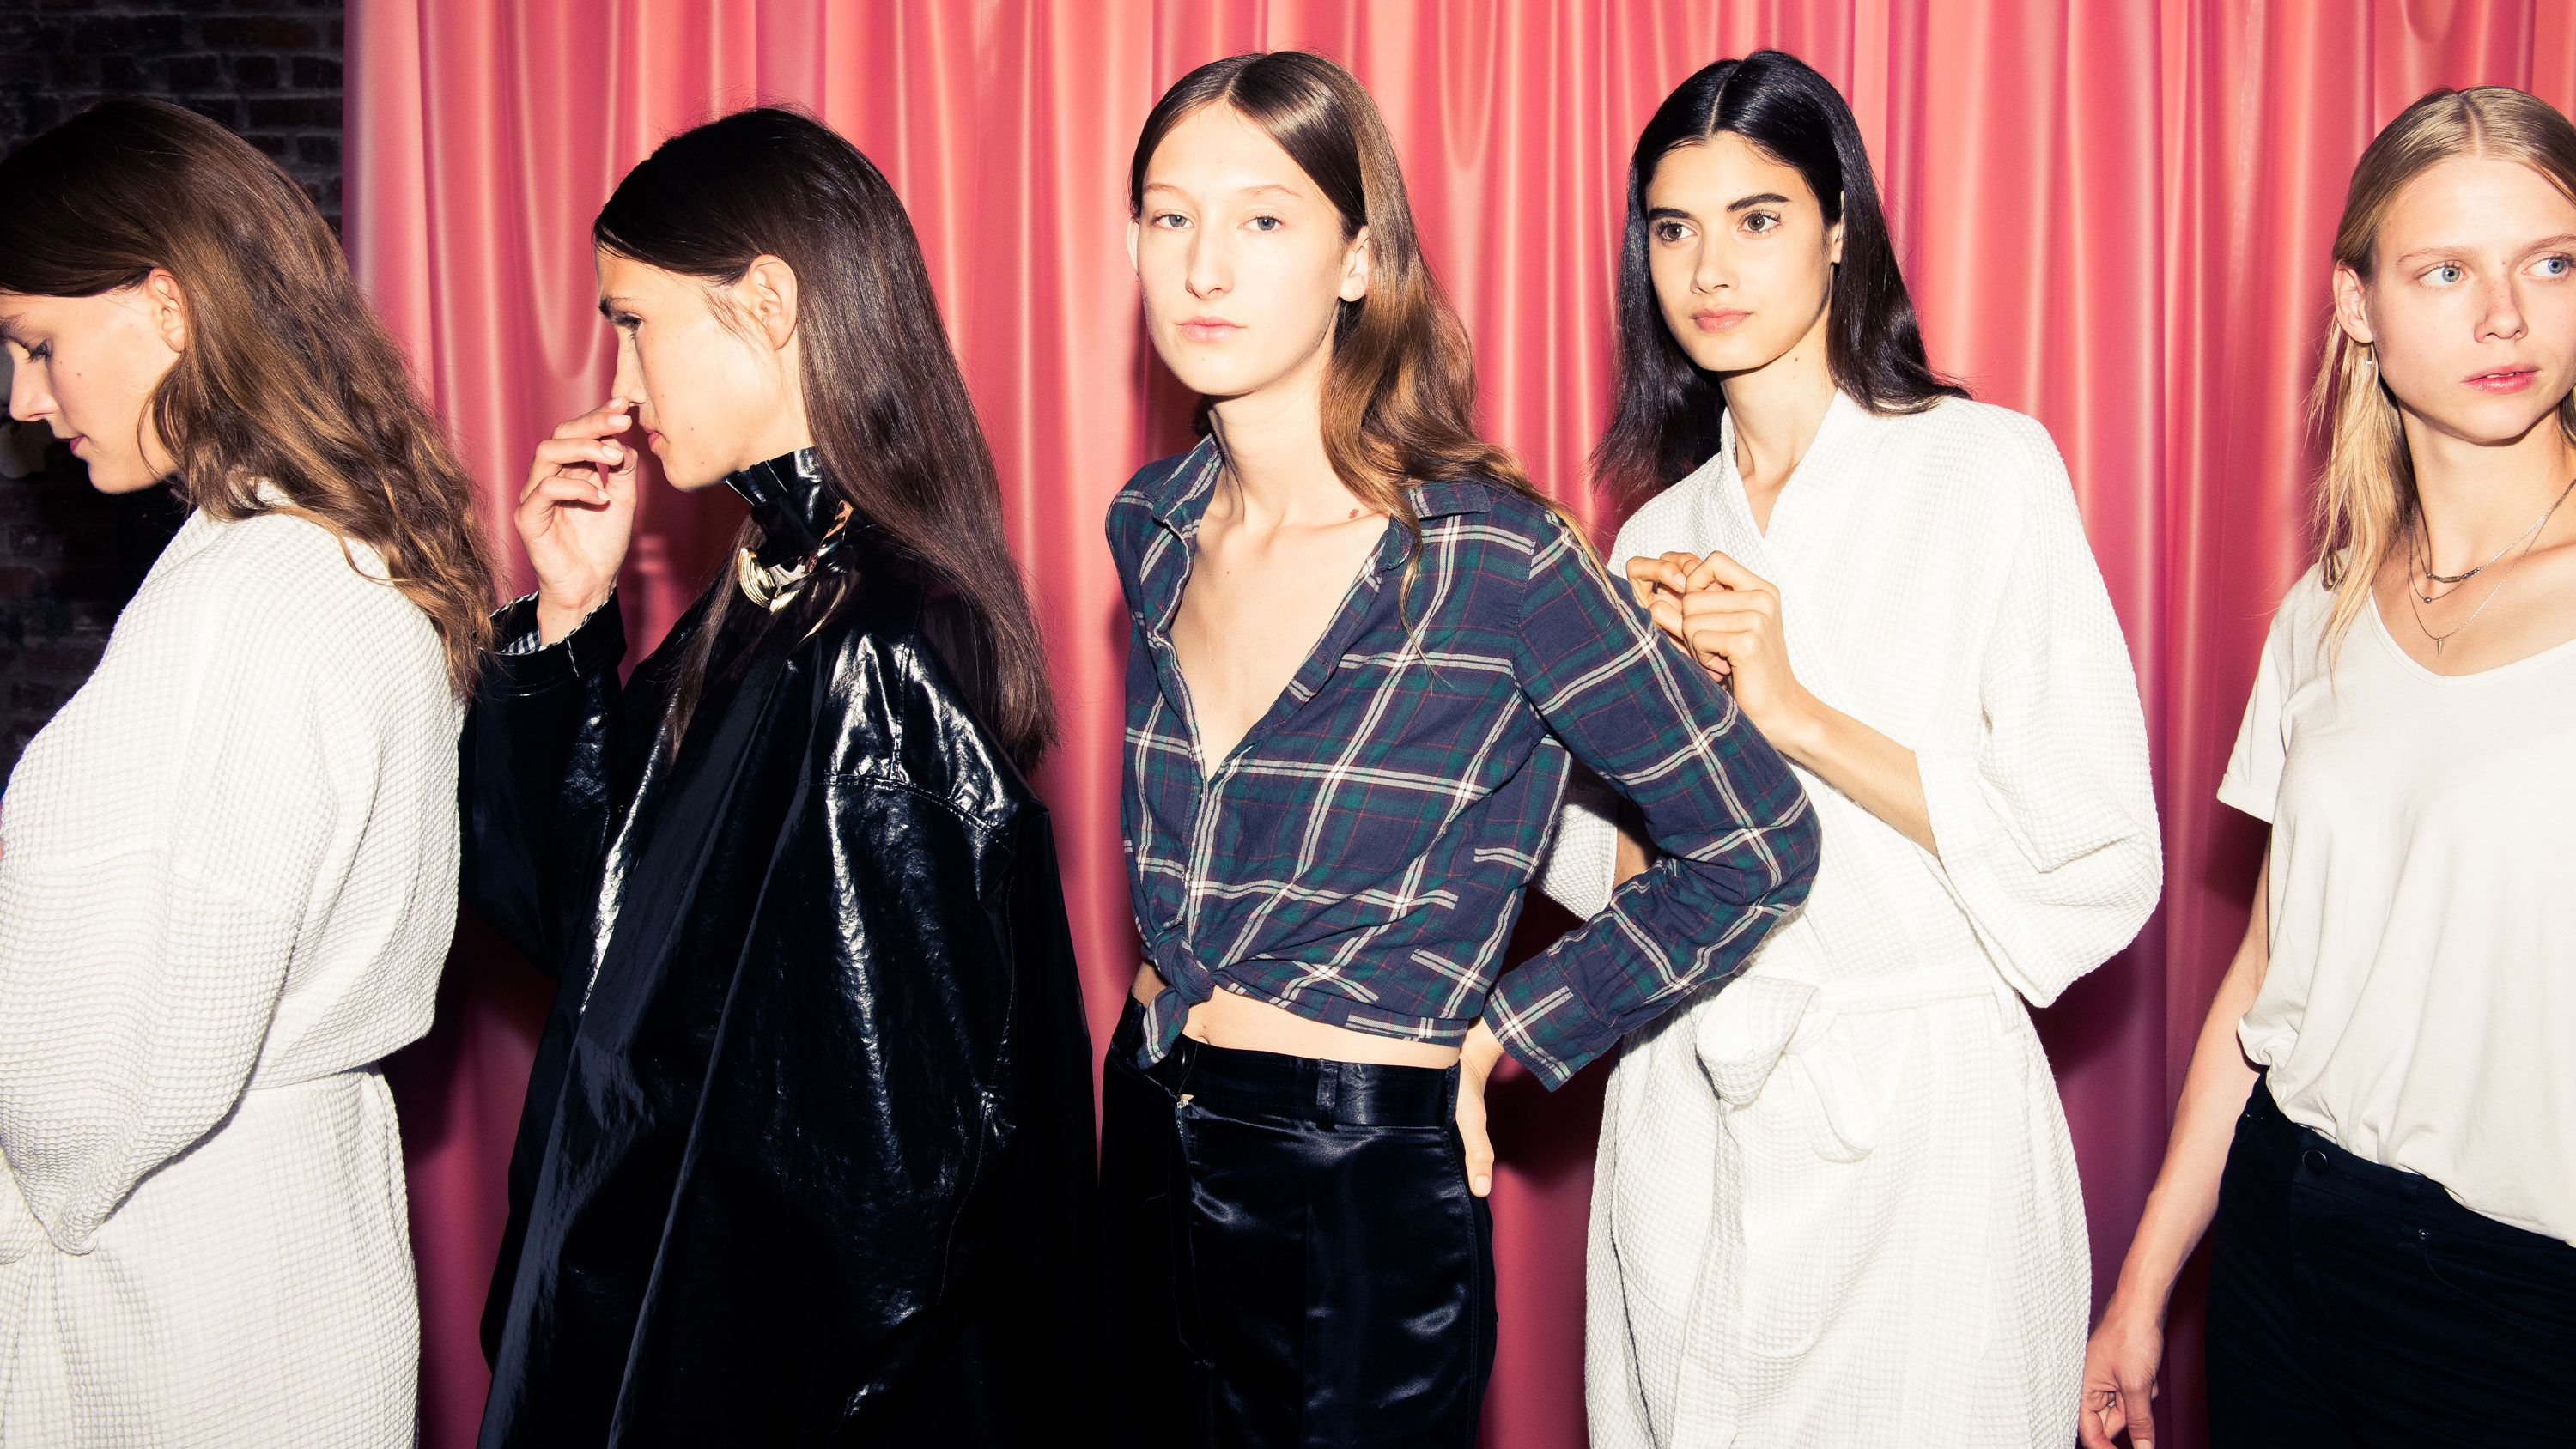 Backstage at the Ellery Spring 2017 Show